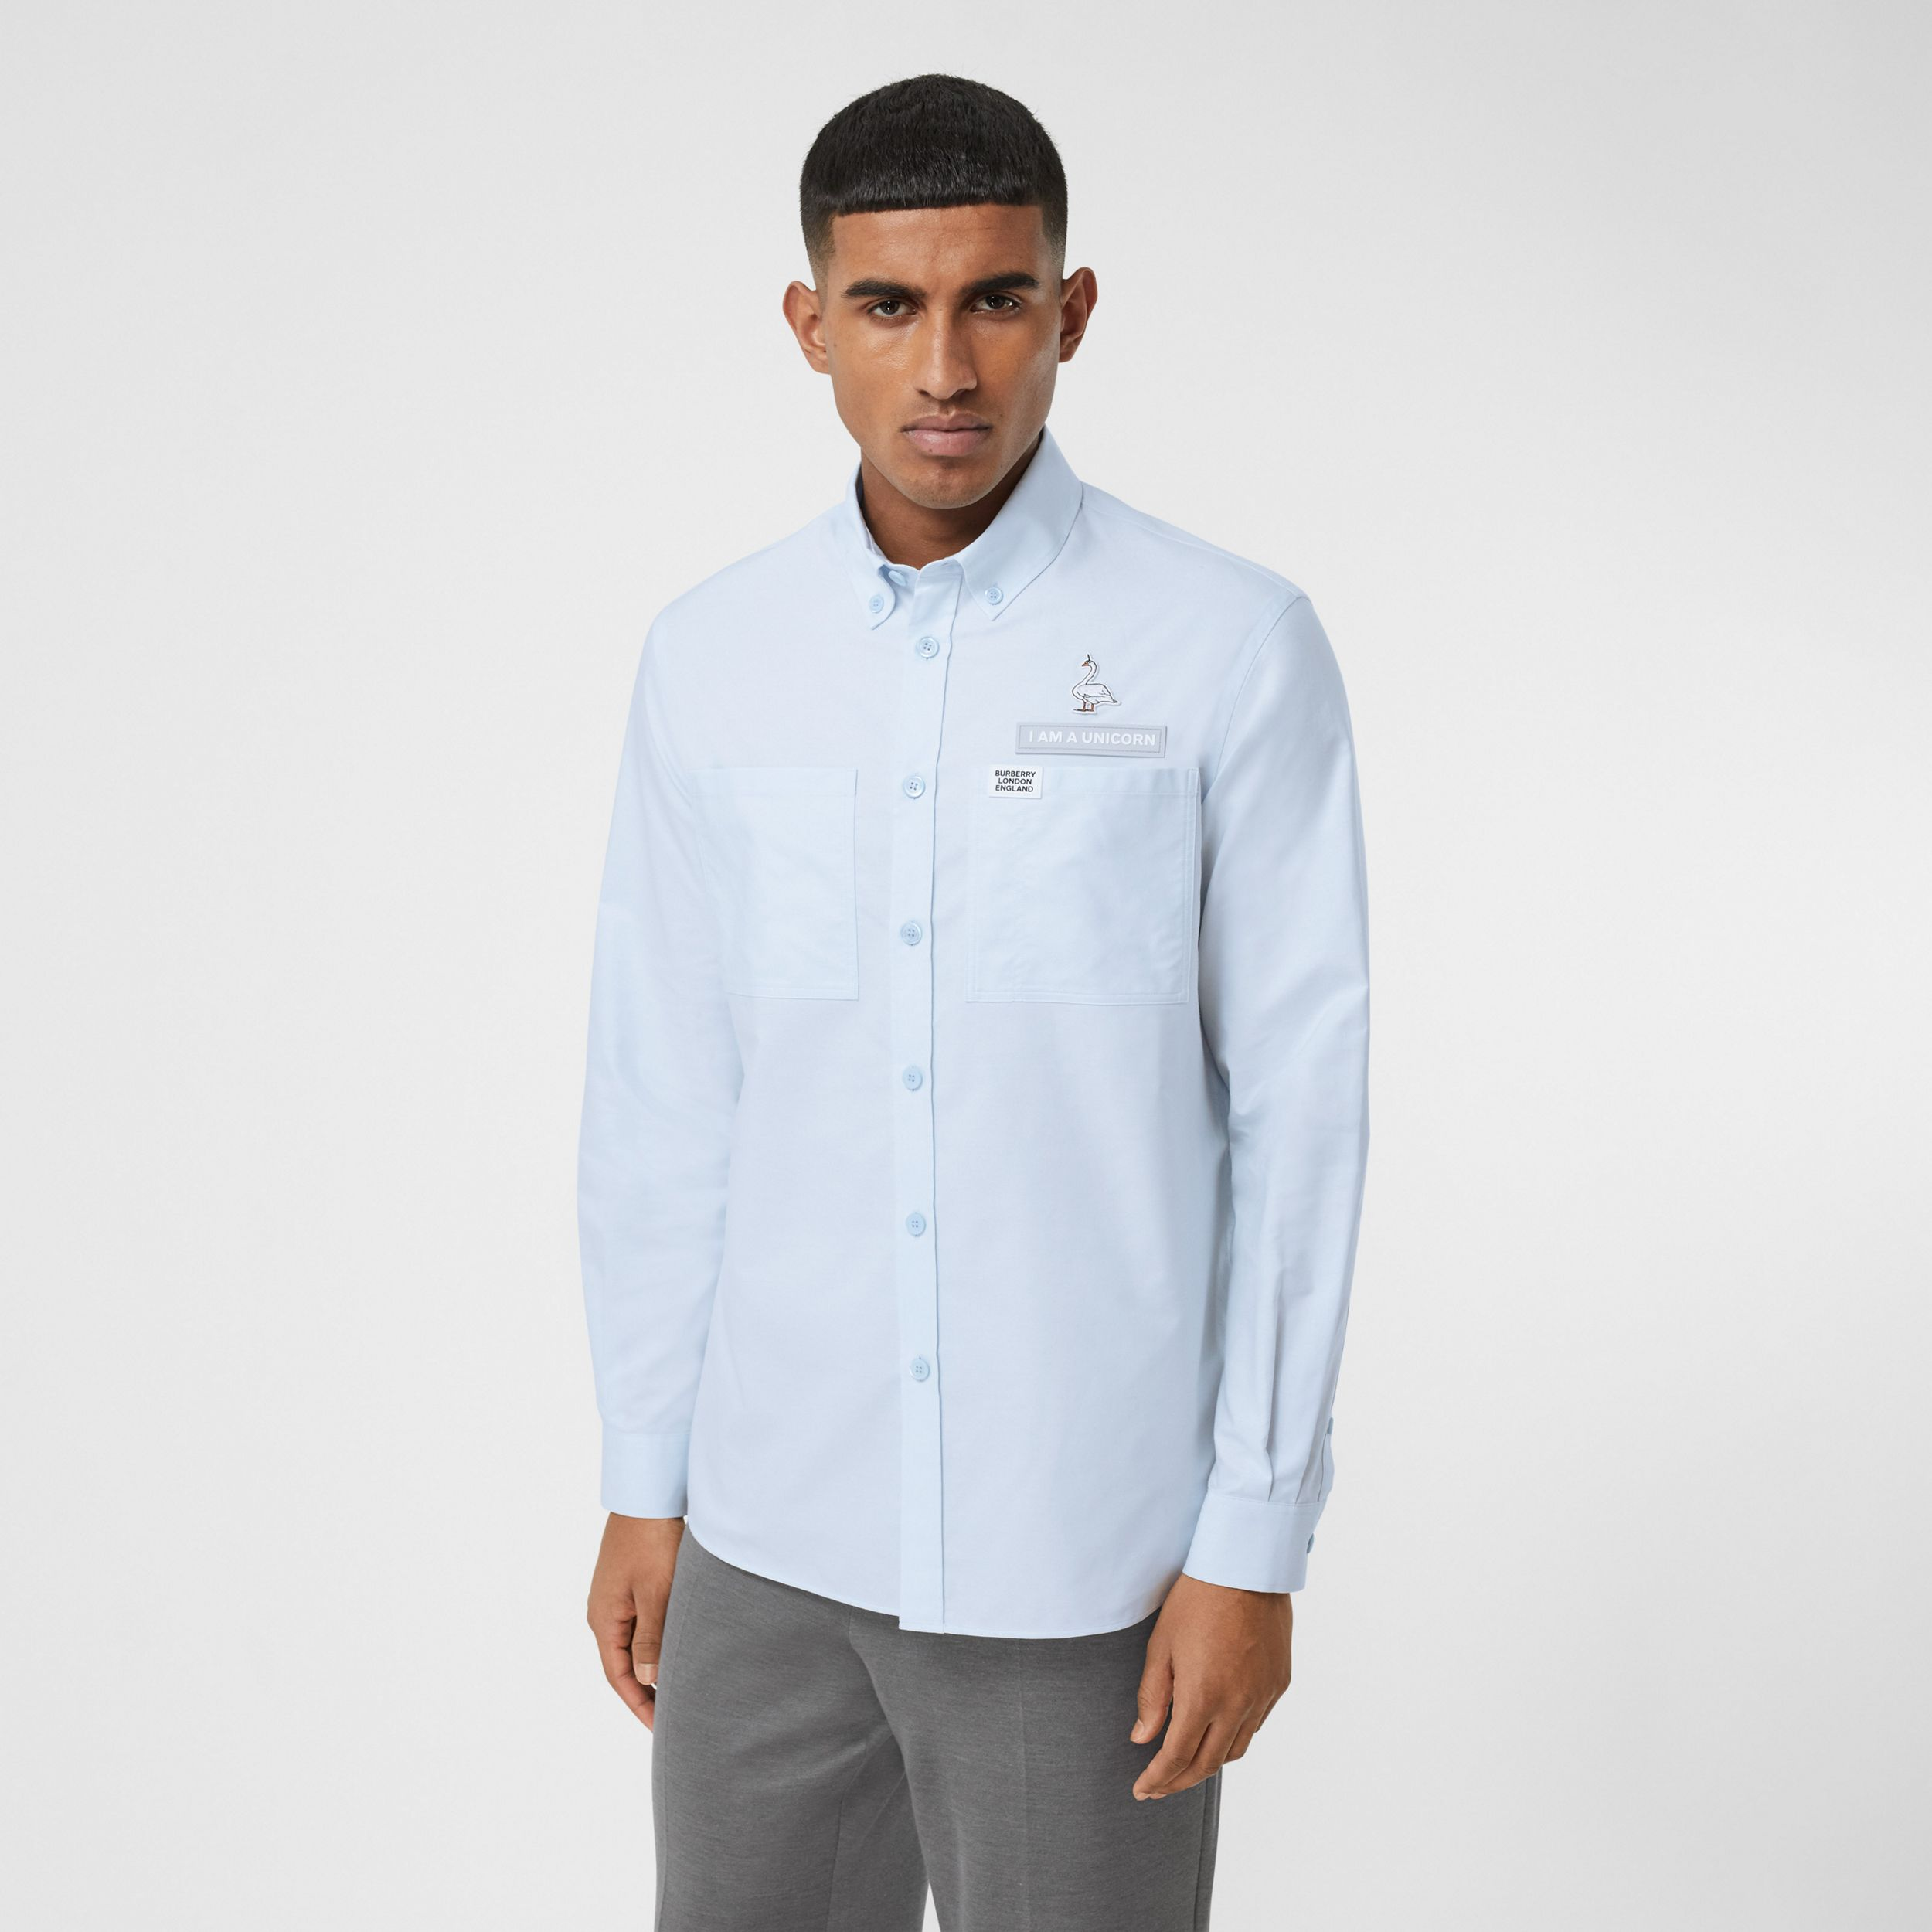 Swan and Slogan Appliqué Cotton Oversized Shirt in Sky Blue - Men | Burberry - 1